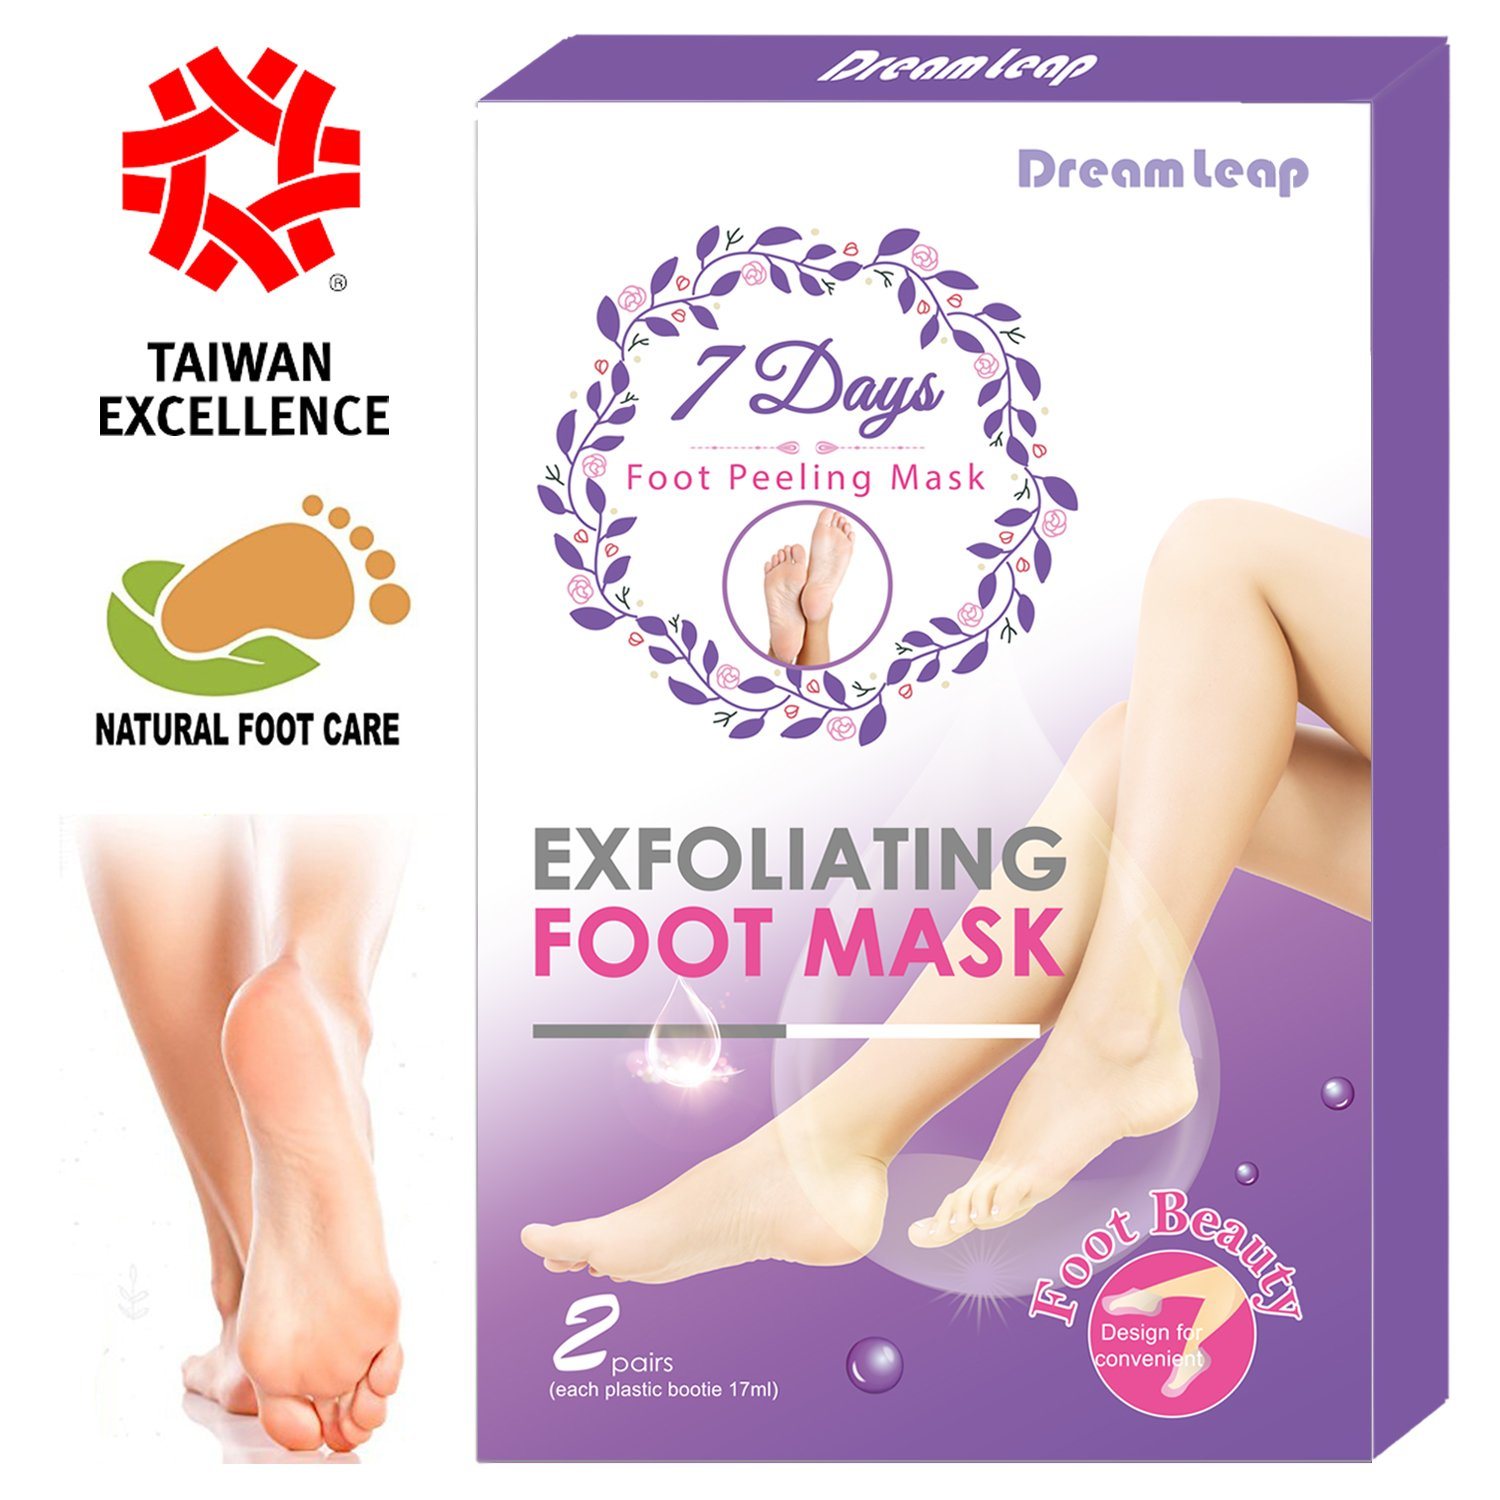 Exfoliating Peel Foot Mask - Callus Removal Foot Mask Pack - 7 Days Get Soft Foot - Natural Foot Mask - Deep Exfoliation for Feet - Foot Peeling off for Dry and Dead Skin (2 Pairs)